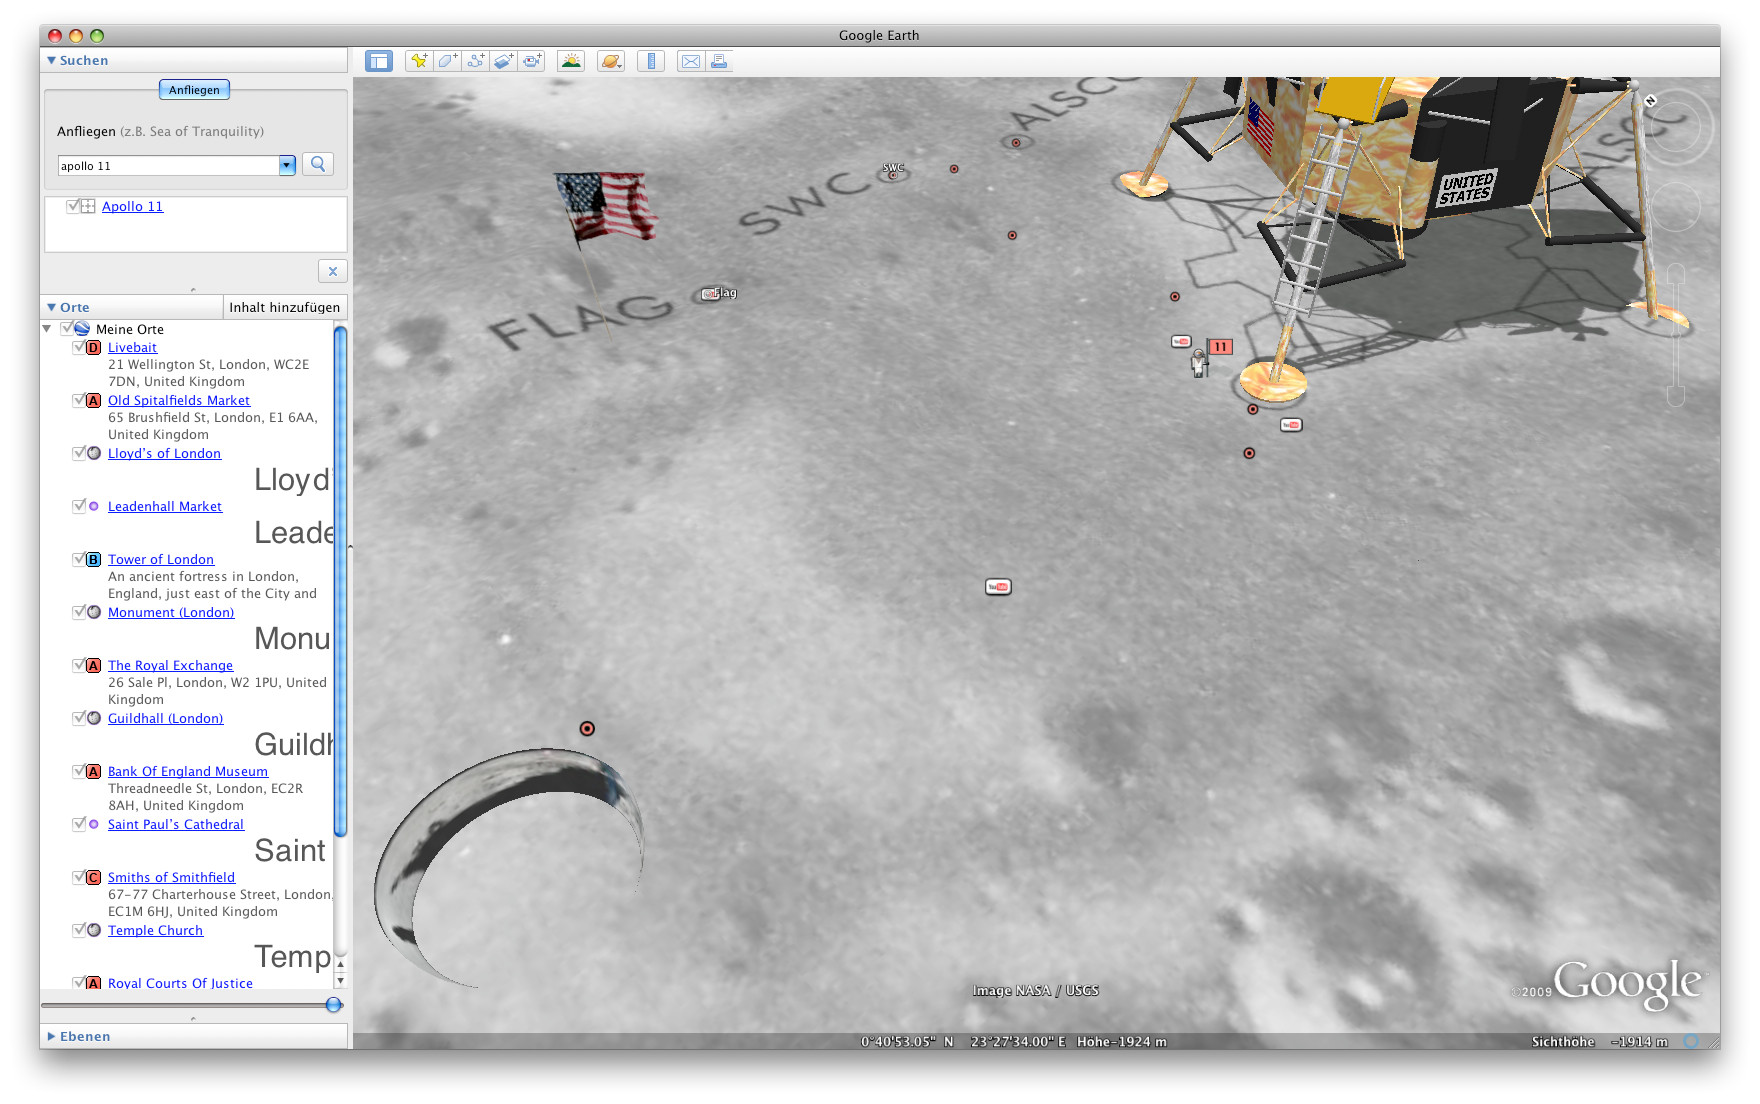 Mondforschung mit Google Earth - Der Mond in Google Earth